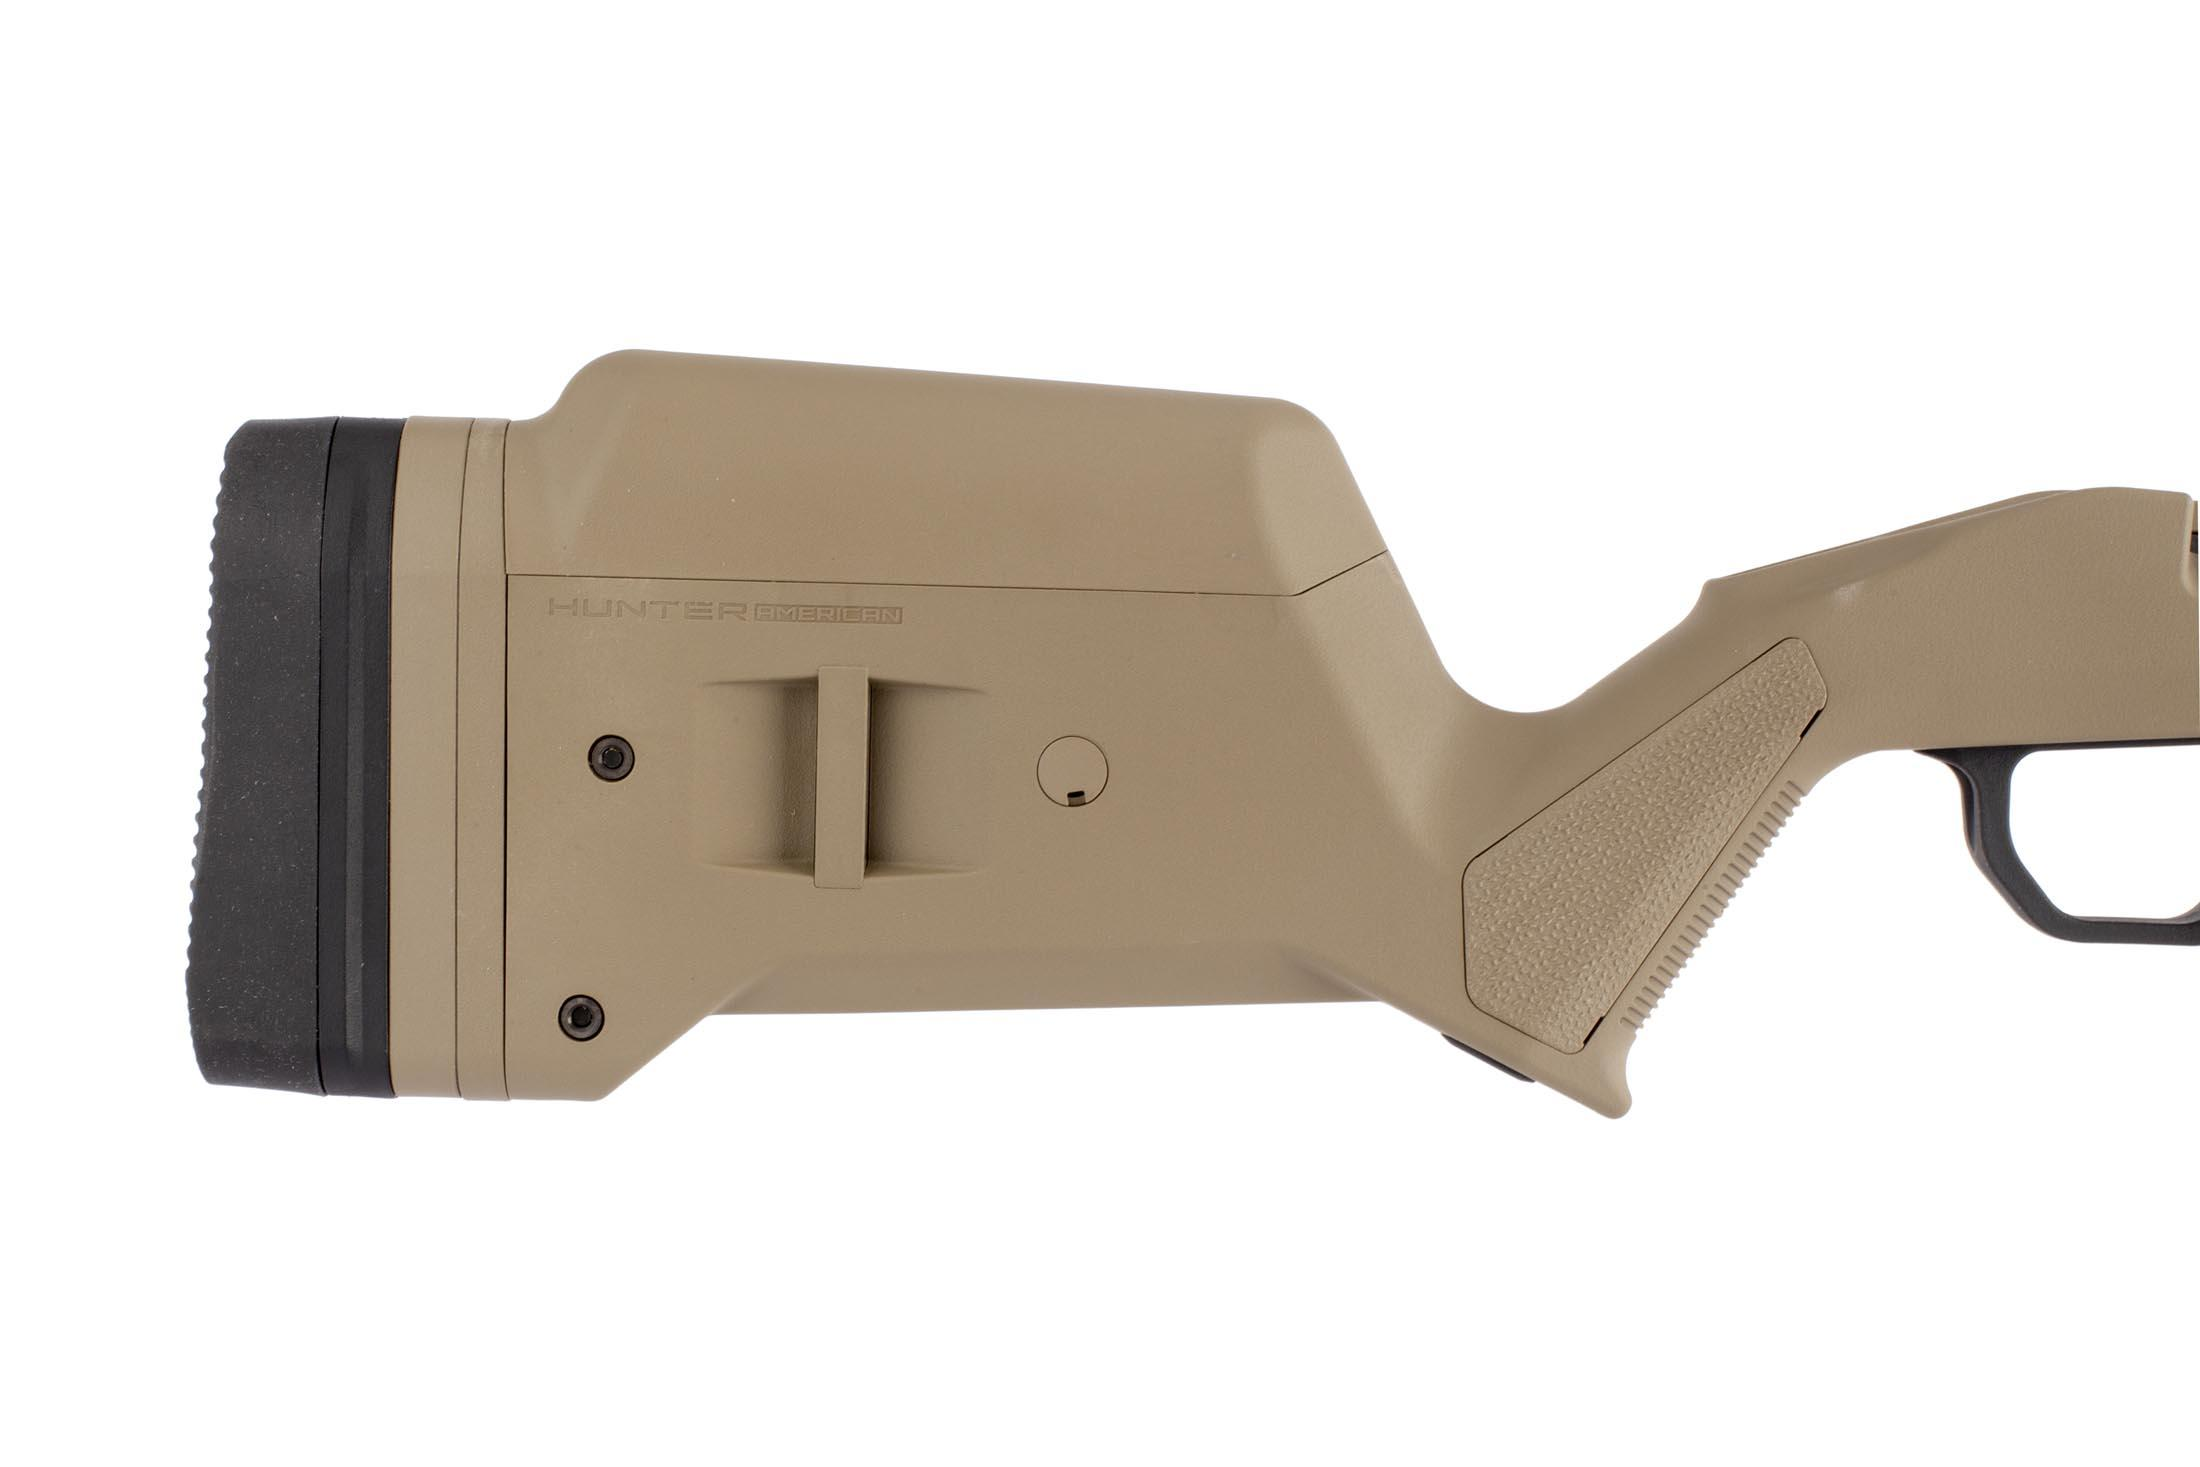 Magpul Hunter short action stocks in fde for the Ruger American uses a spacer system for optimal length of pull and comb height